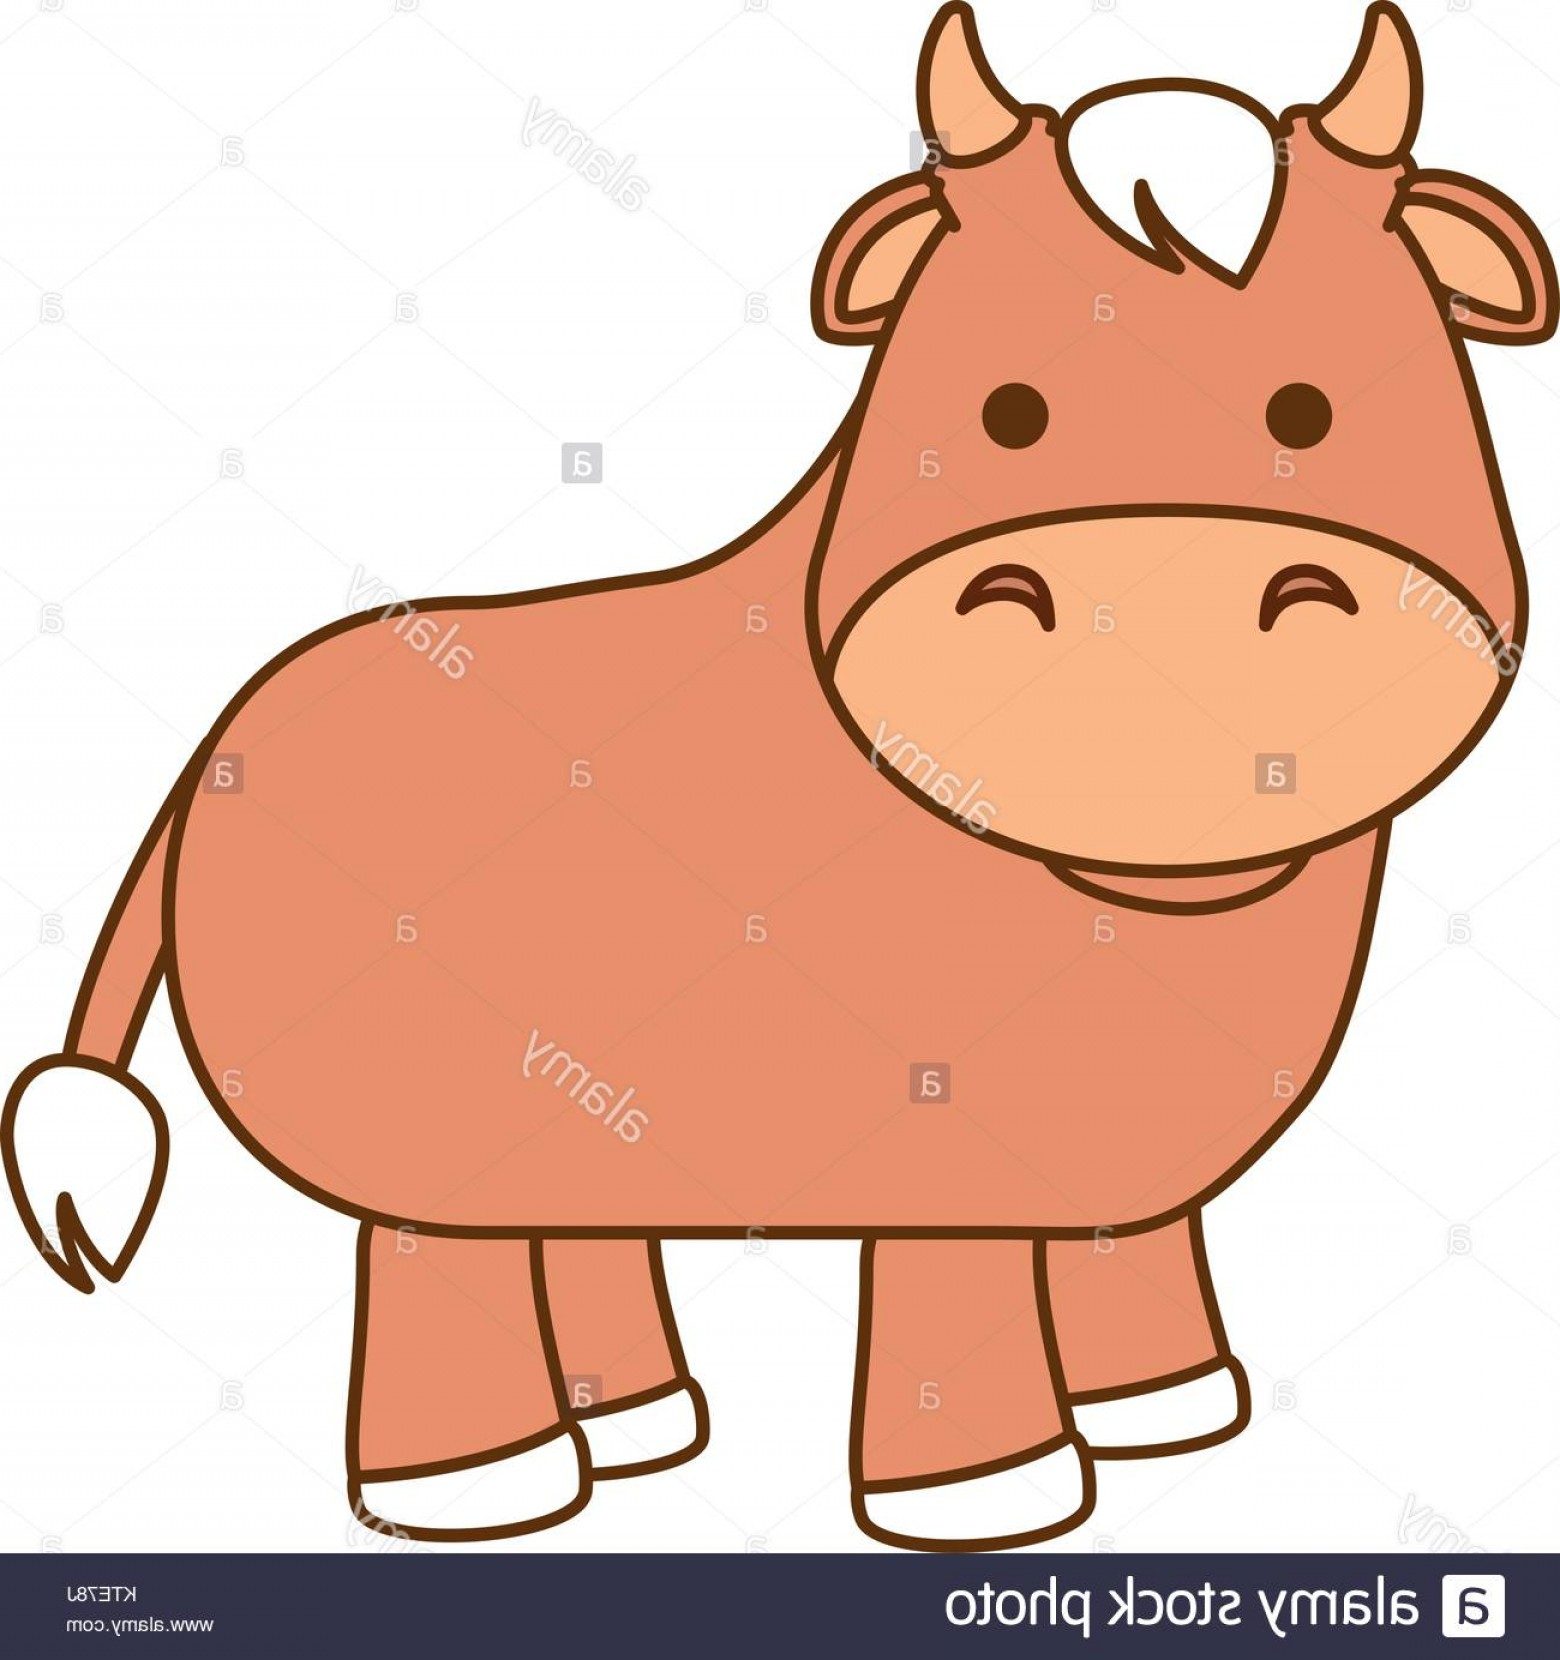 Ox Vector: Stock Photo Cute Ox Character Icon Vector Illustration Design